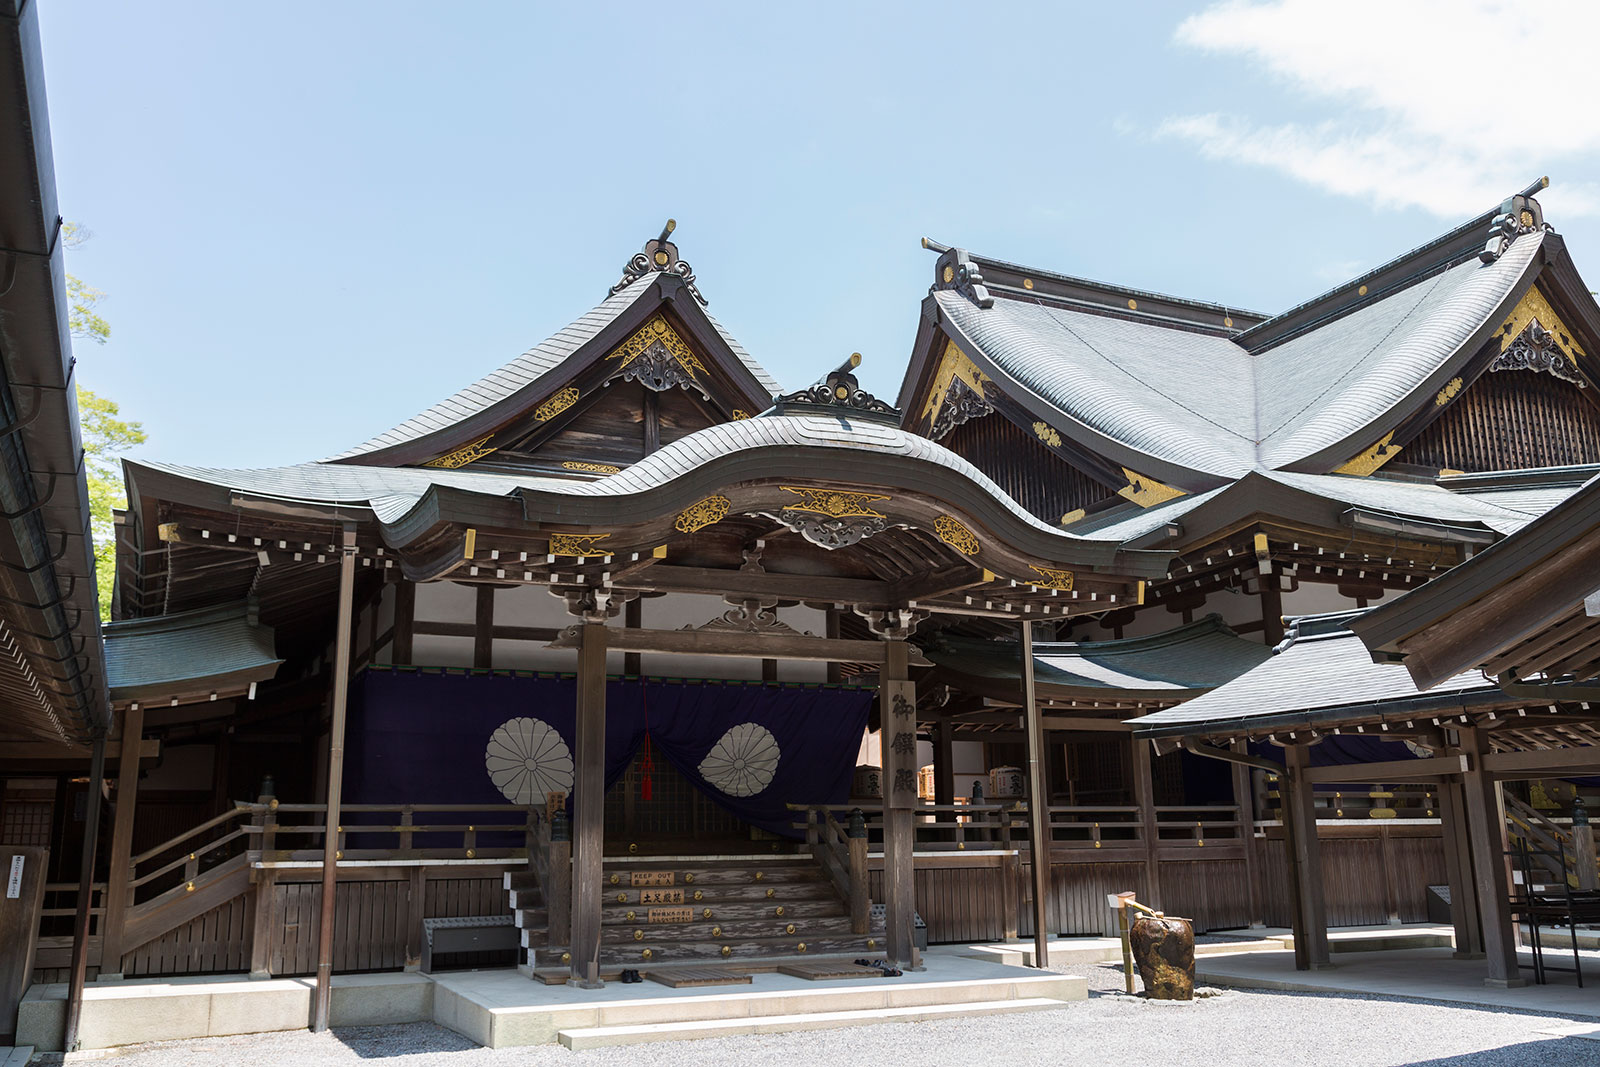 empire of japan and shinto State shintō (国家神道 or 國家神道, kokka shintō) describes empire of japan's ideological use of the native folk traditions of shinto [1]:547 the state strongly encouraged shinto practices to emphasize the emperor as a divine being [2]:8 this was exercised through control of finances and training regimes for priests.